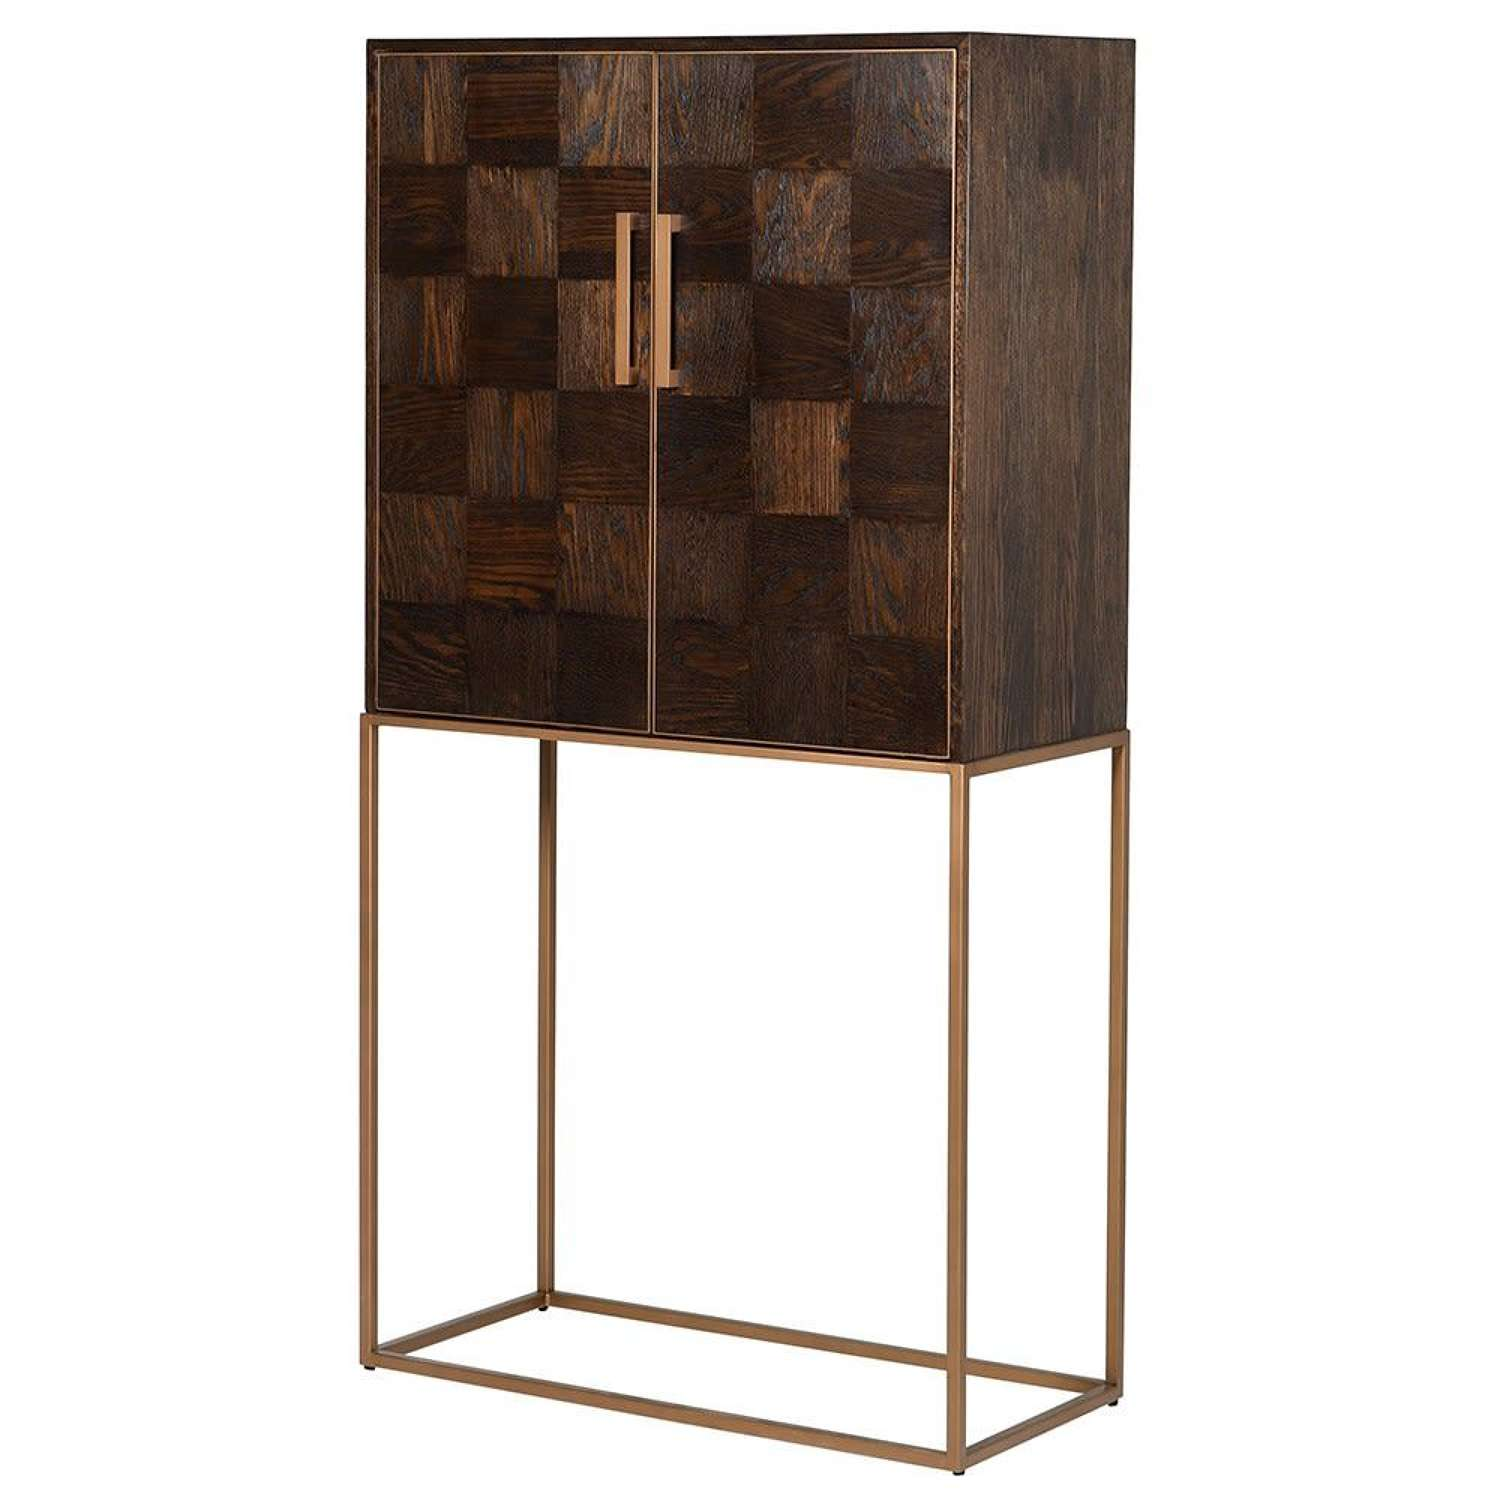 Oak and Iron Parquet Drinks Cabinet